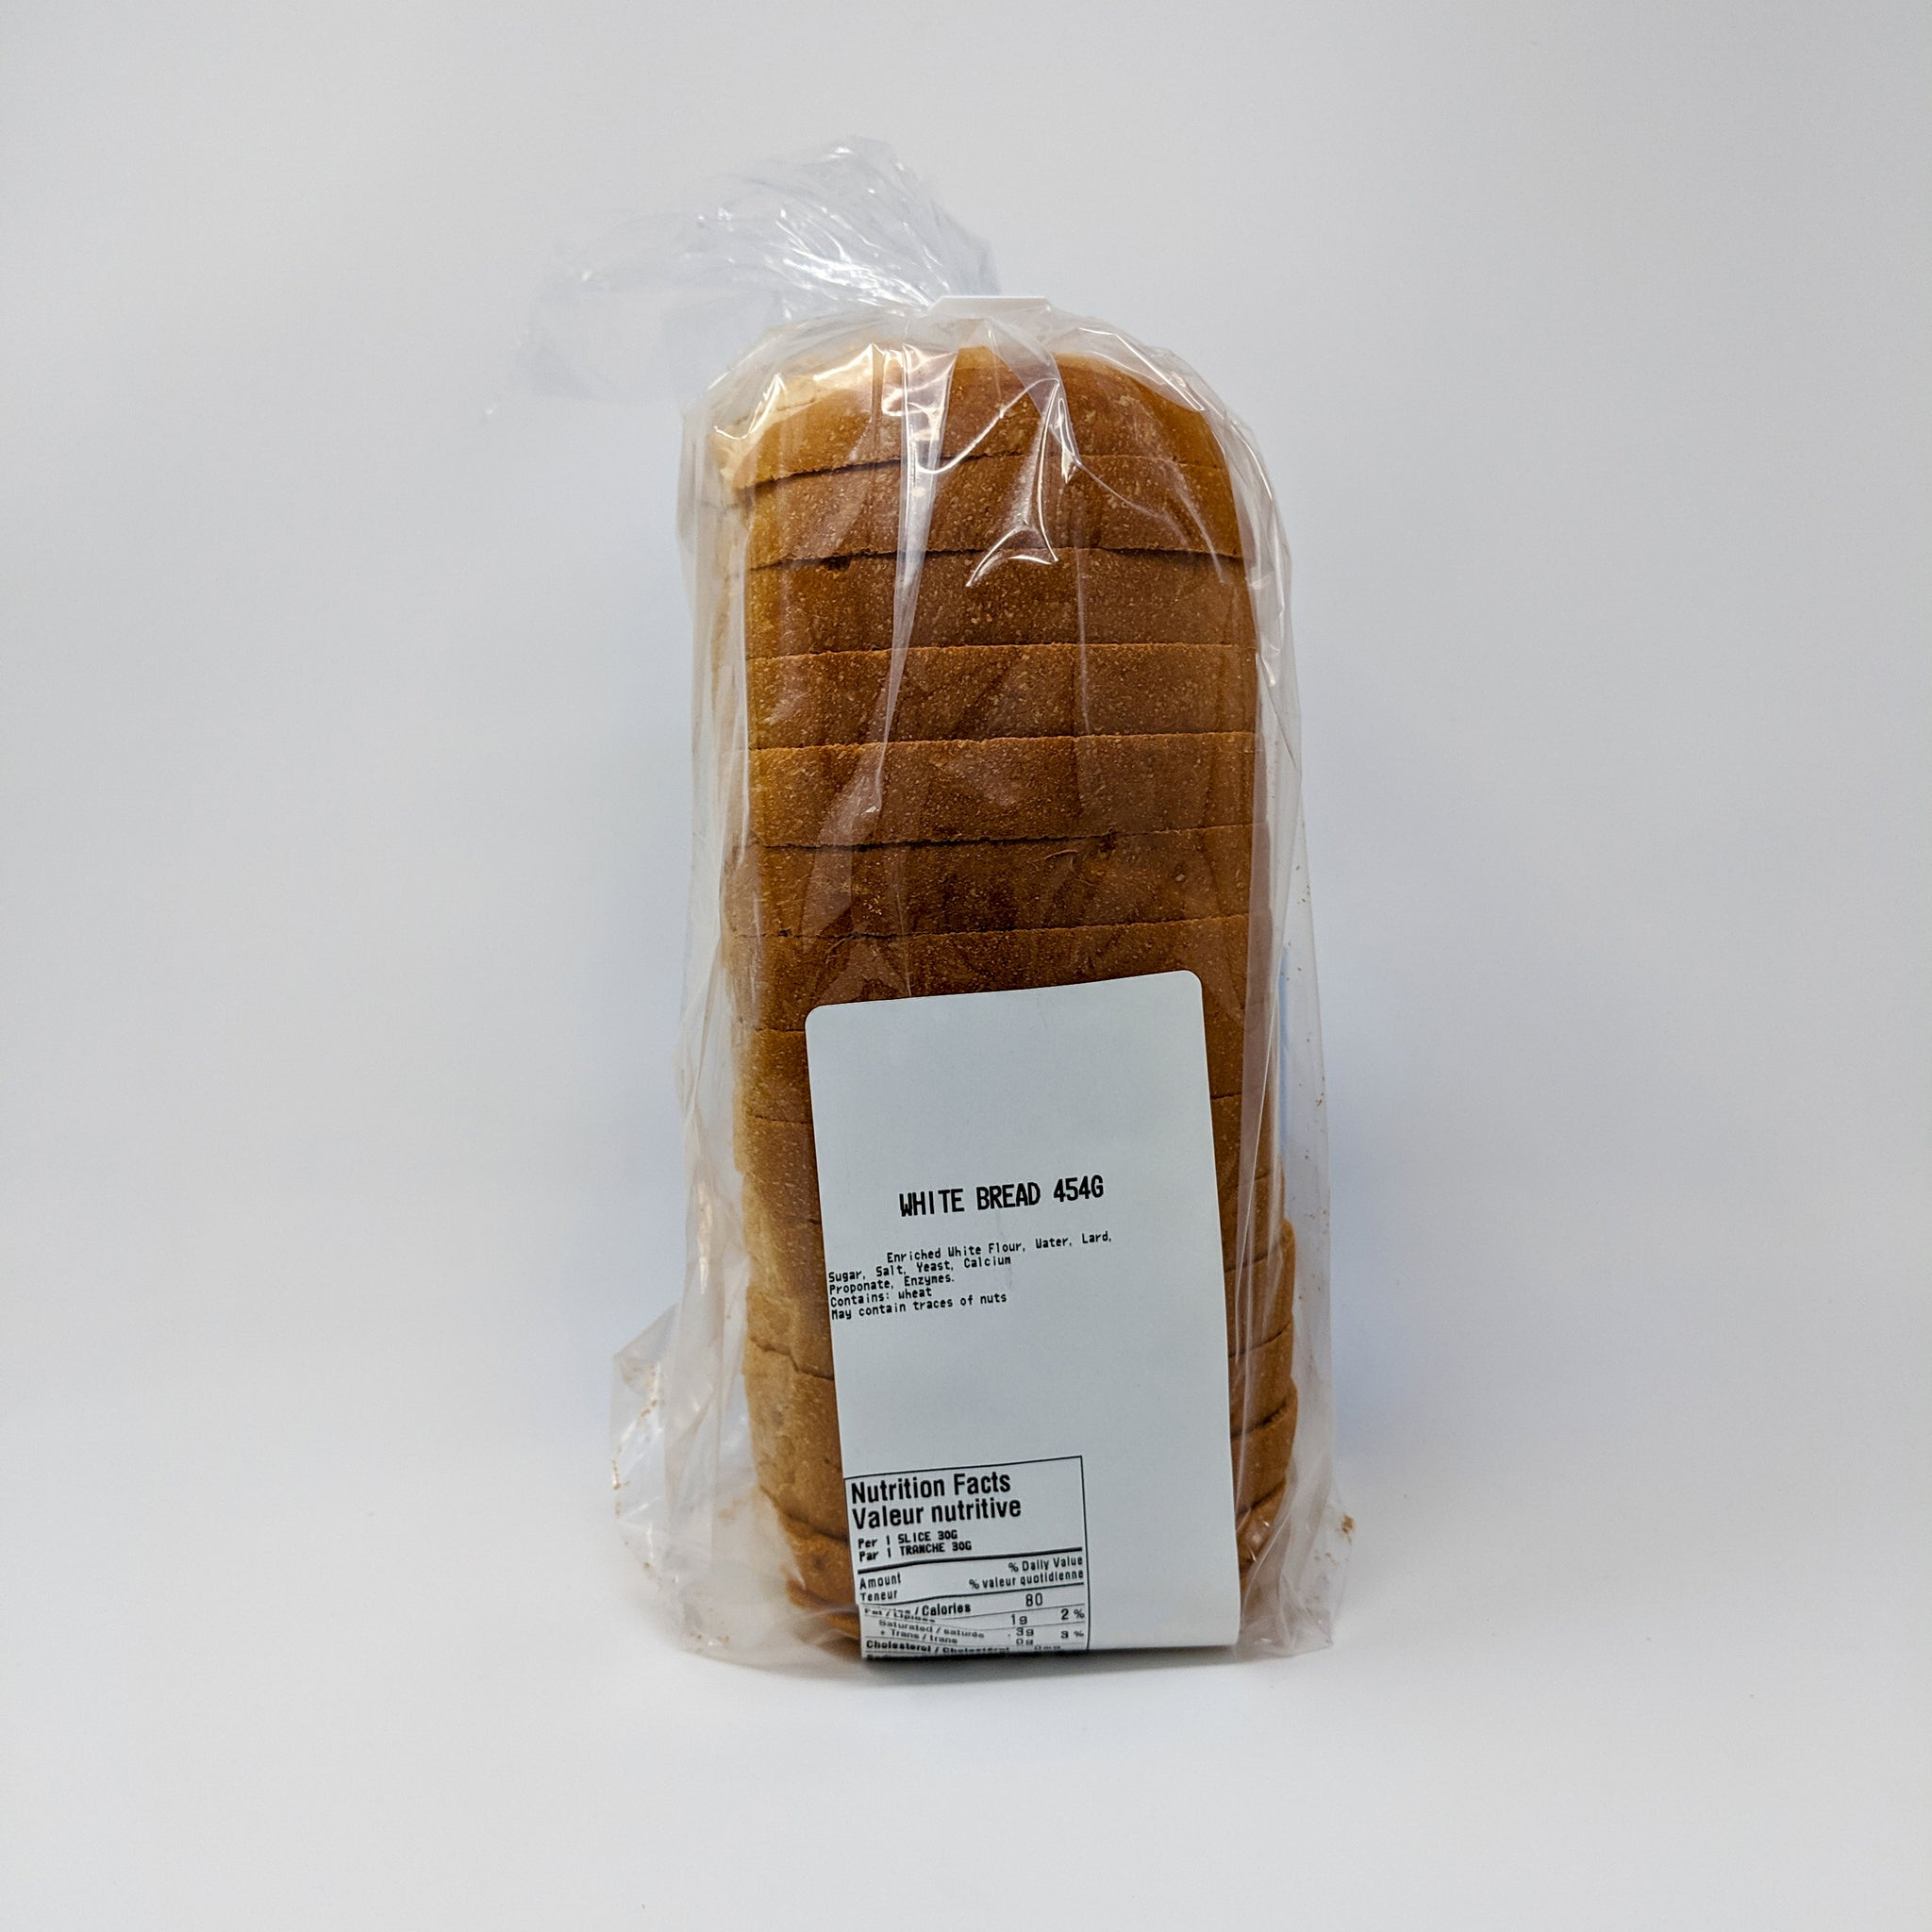 White Bread (454g) - St-Pierre